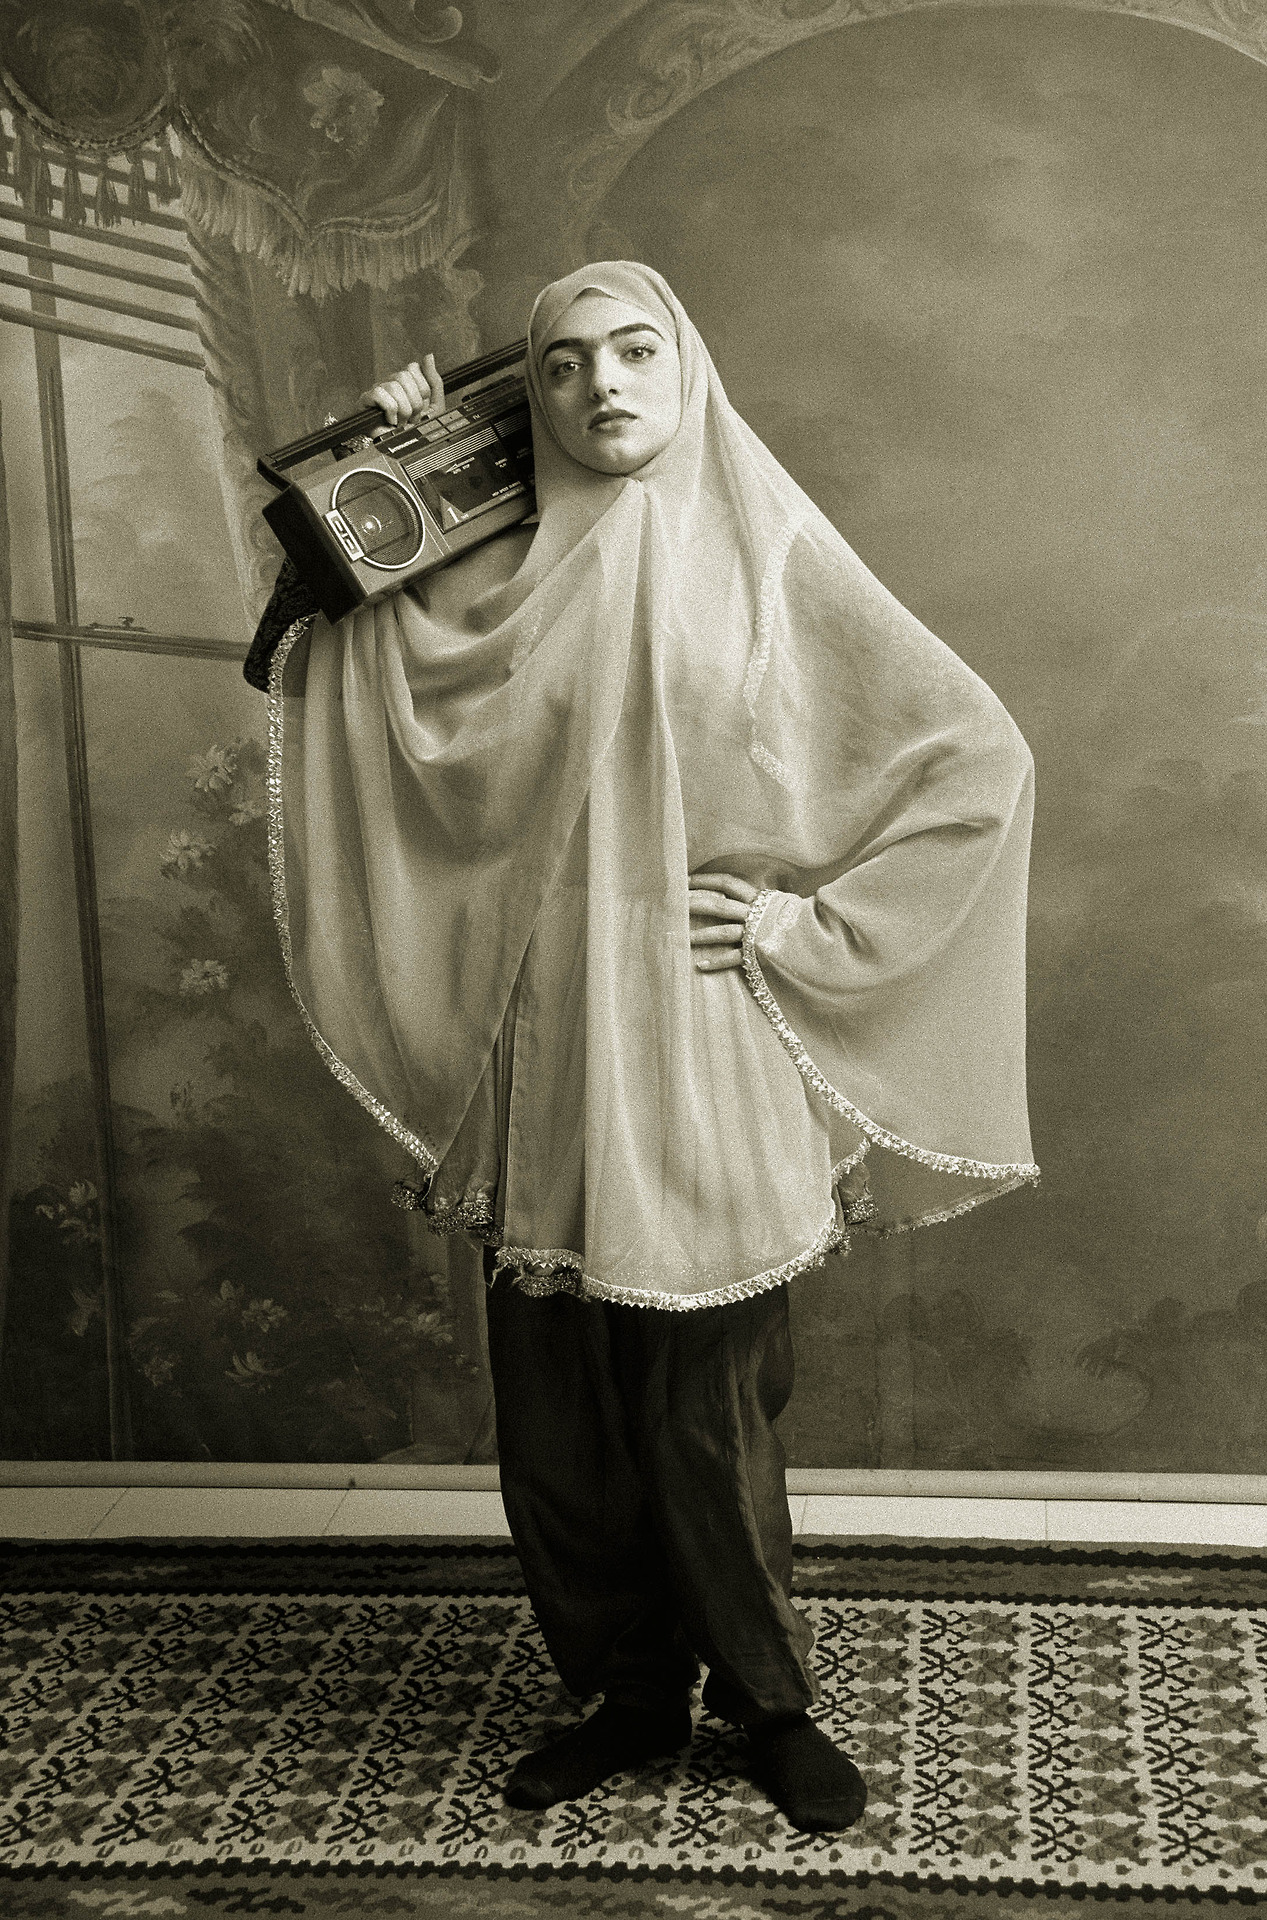 I love this photo because it show defiance against   oppression.      It shows a young woman posing with an object banned under the Iranian Revolution.           Ghadirian, S. (Photographer). (1998). Qajar 3 [Web Photo]. Retrieved from  http://www.wipnyc.org/blog/shadi-ghadirian